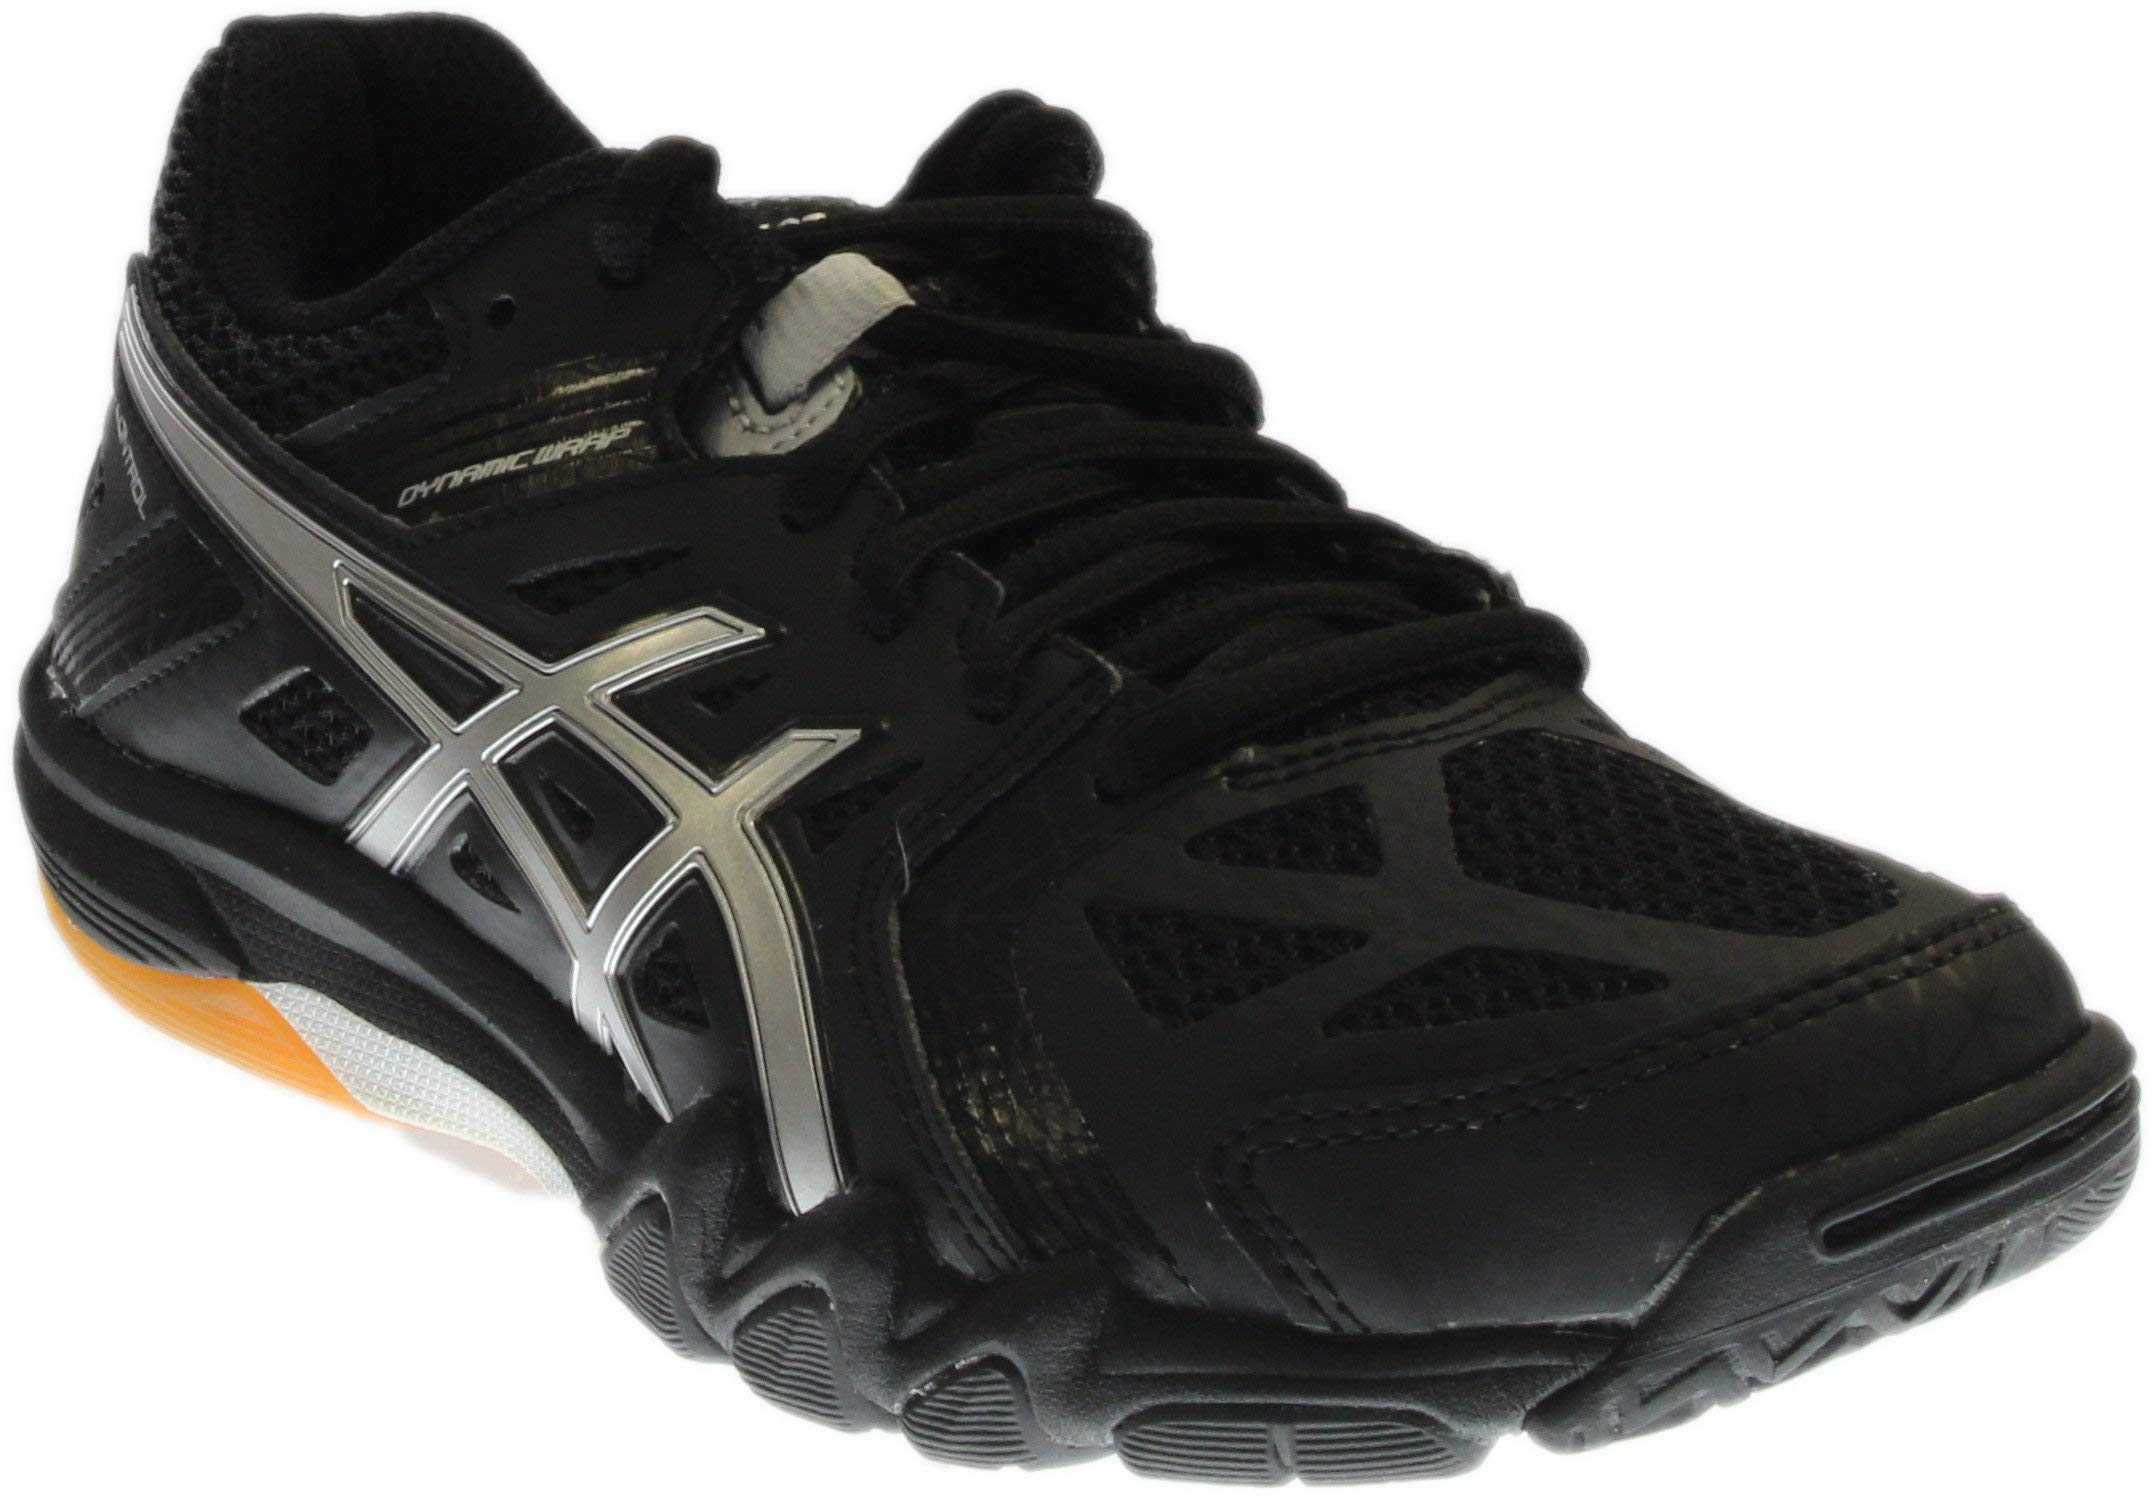 64b2c4e71705 Galleon - ASICS Women s Gel Court Control Volleyball Shoe